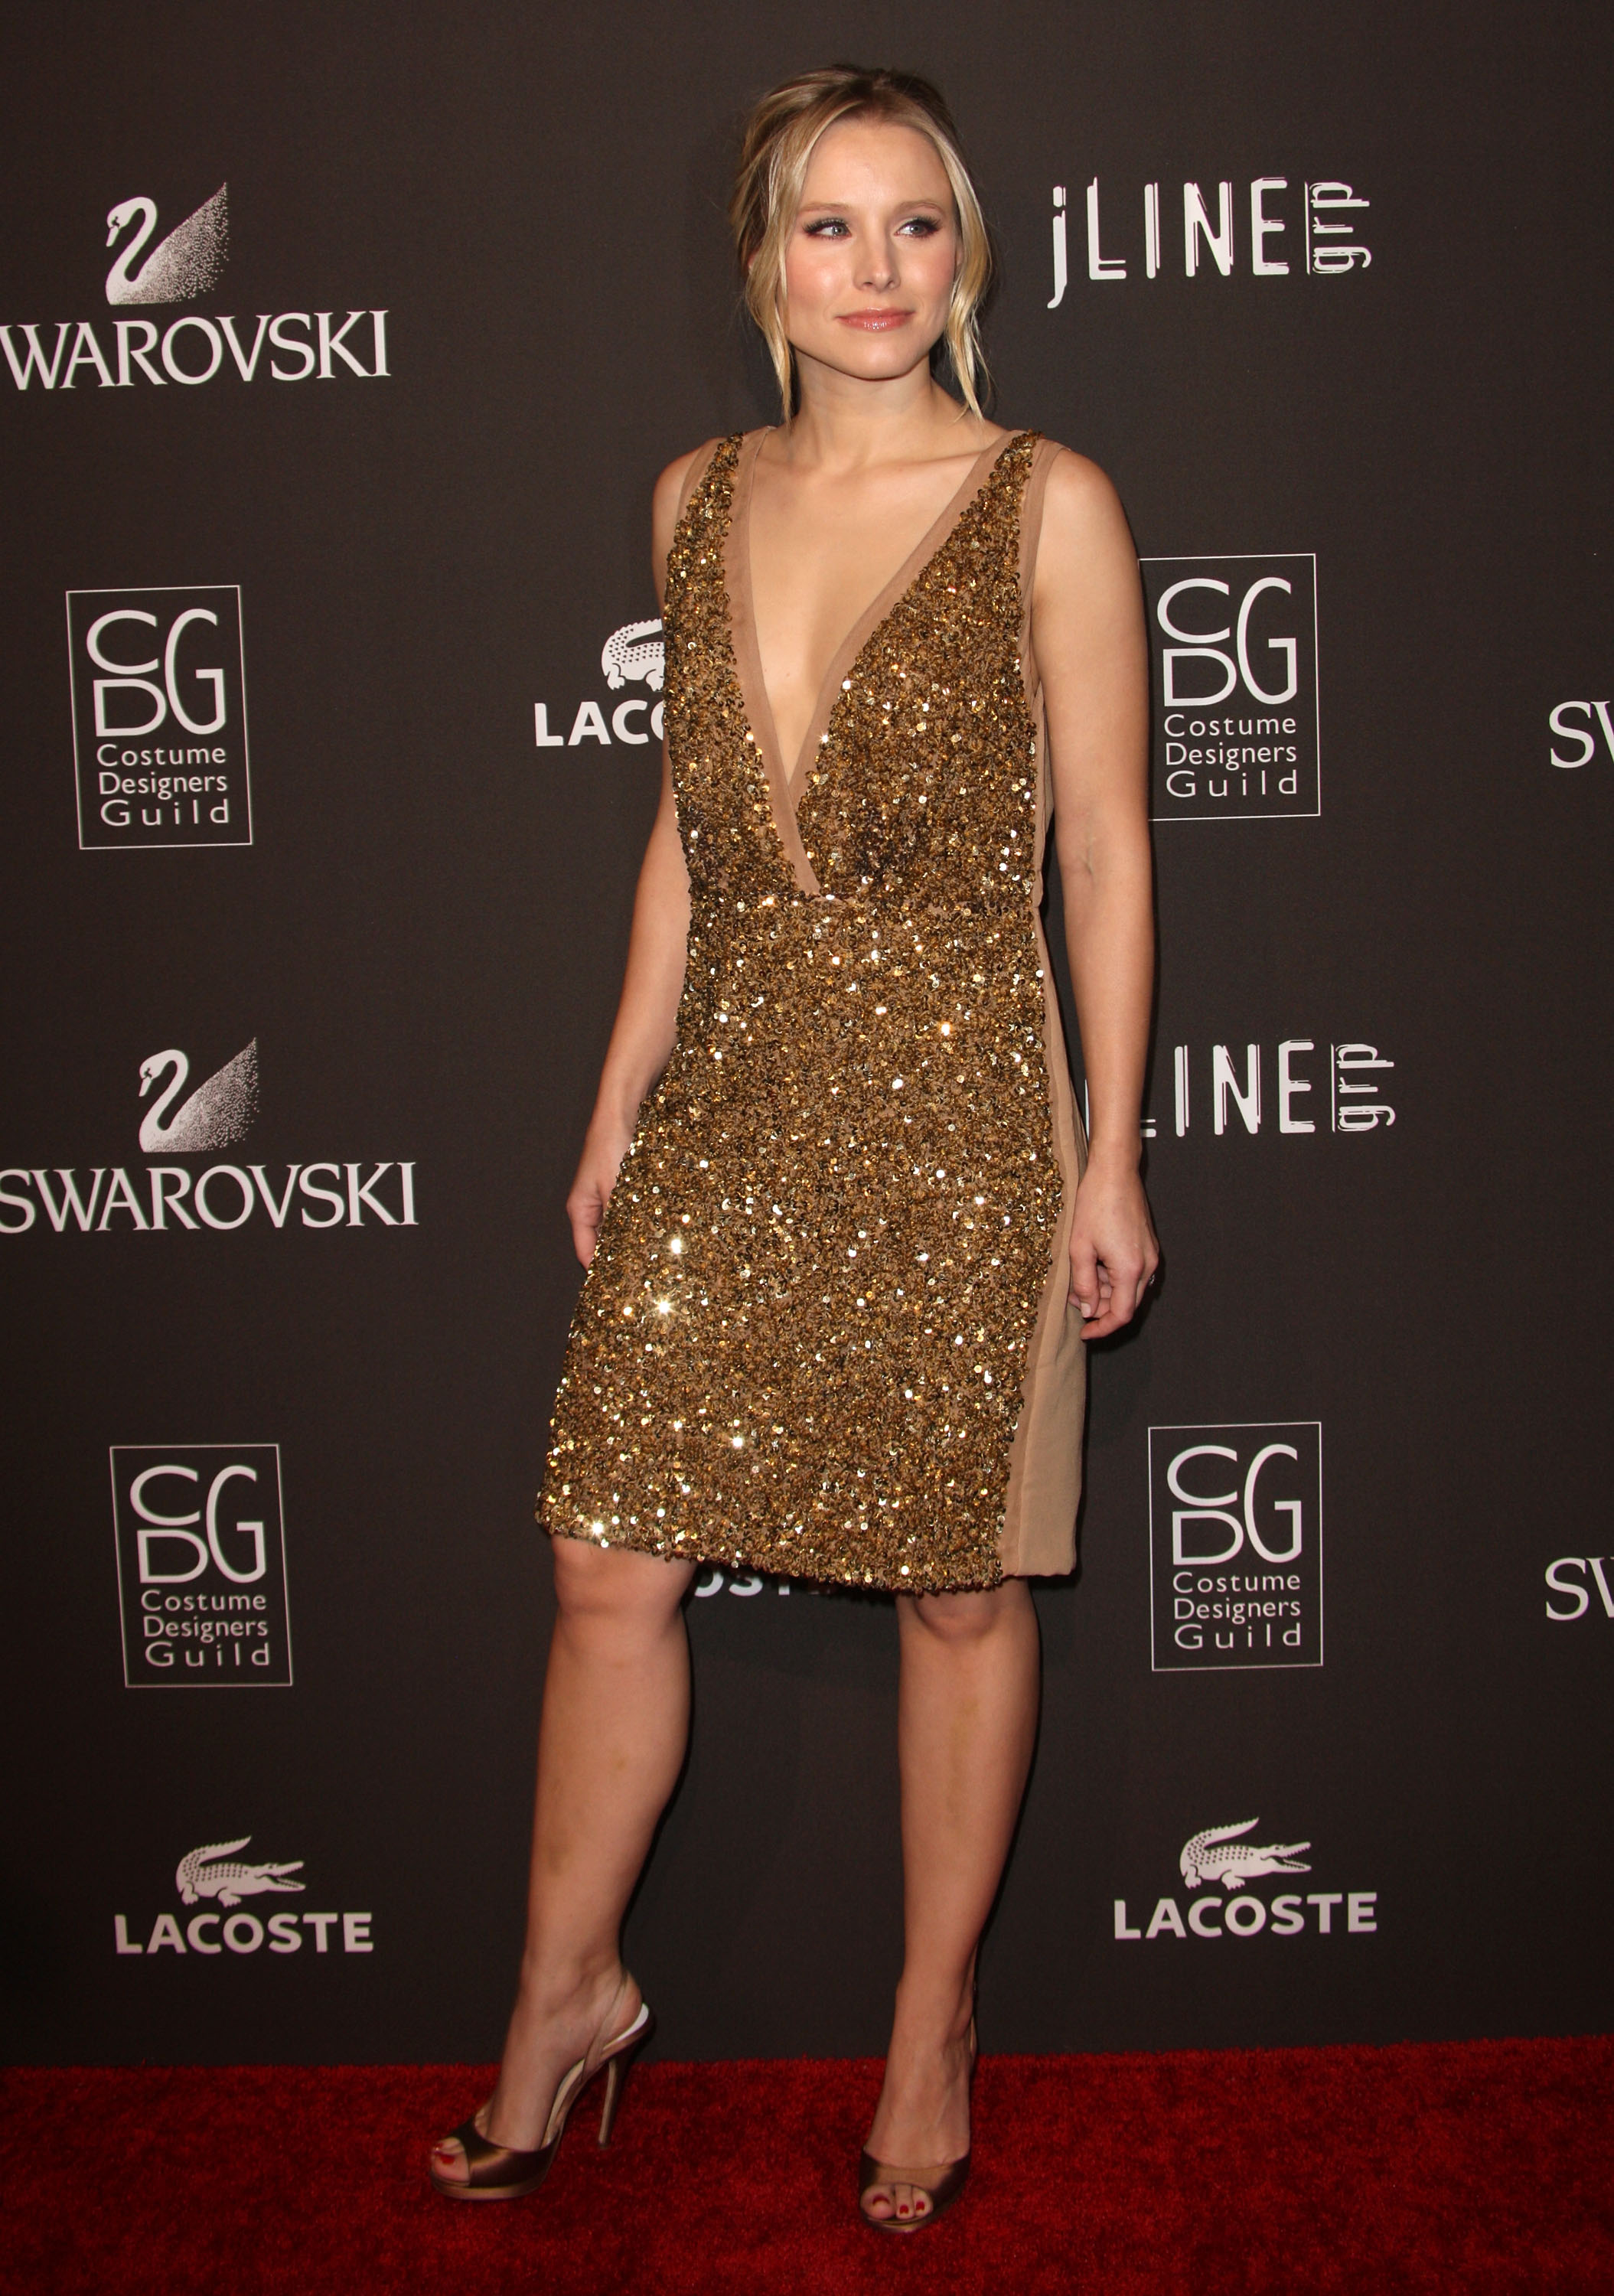 12th Annual Costume Designers Guild Awards With Presenting Sponsor Swarovski - Arrivals